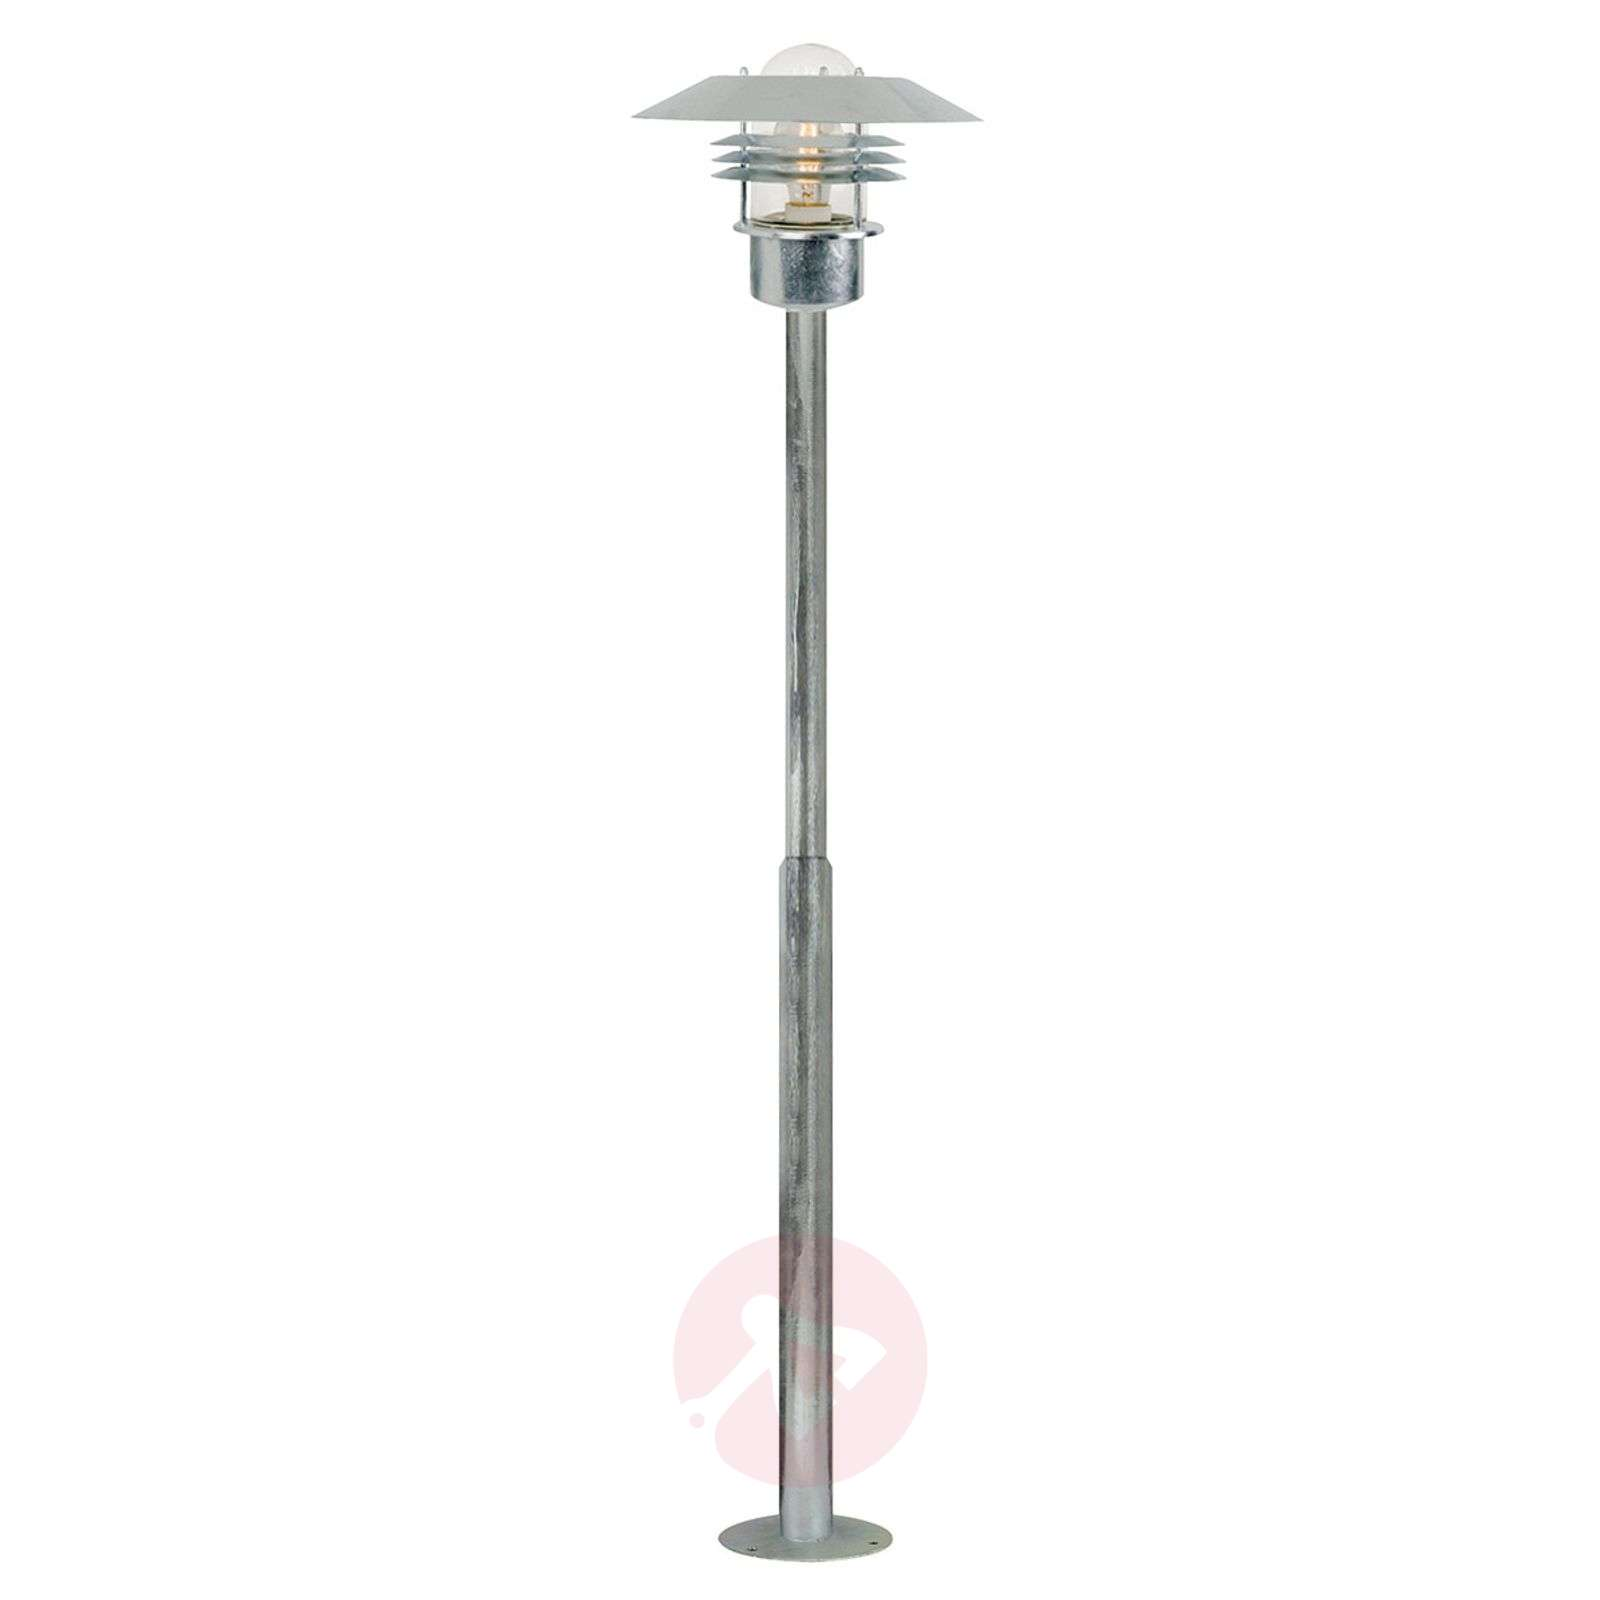 Height-adjustable pole light Vejers-7005590-01